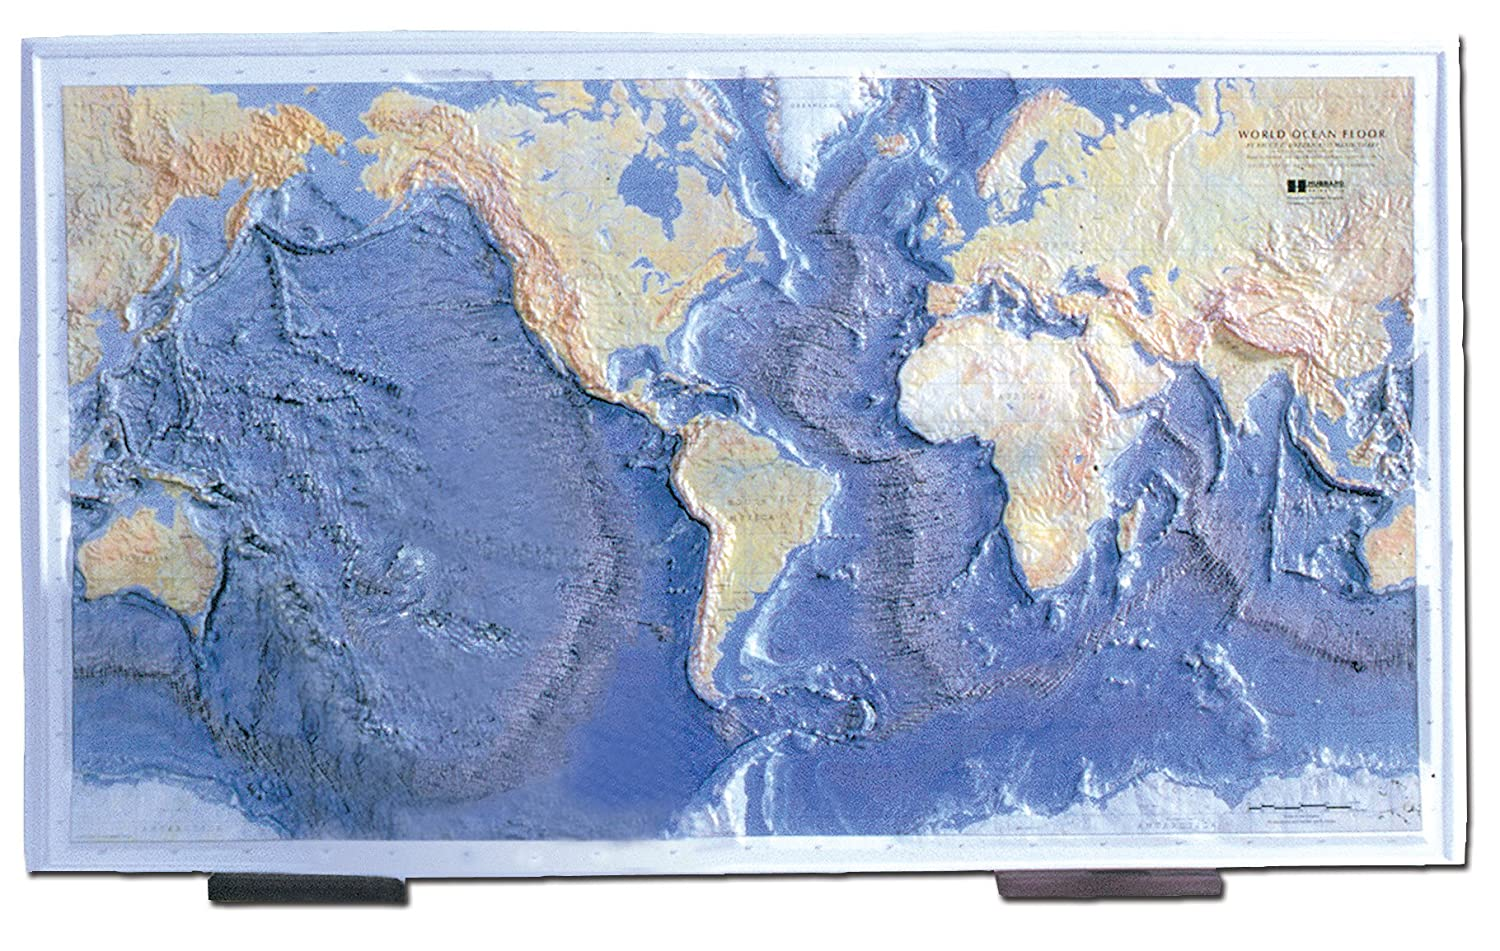 Hubbard Scientific Ocean Floor Raised Relief Map, 26' x 39' 26 x 39 American Educational Products 131-3823